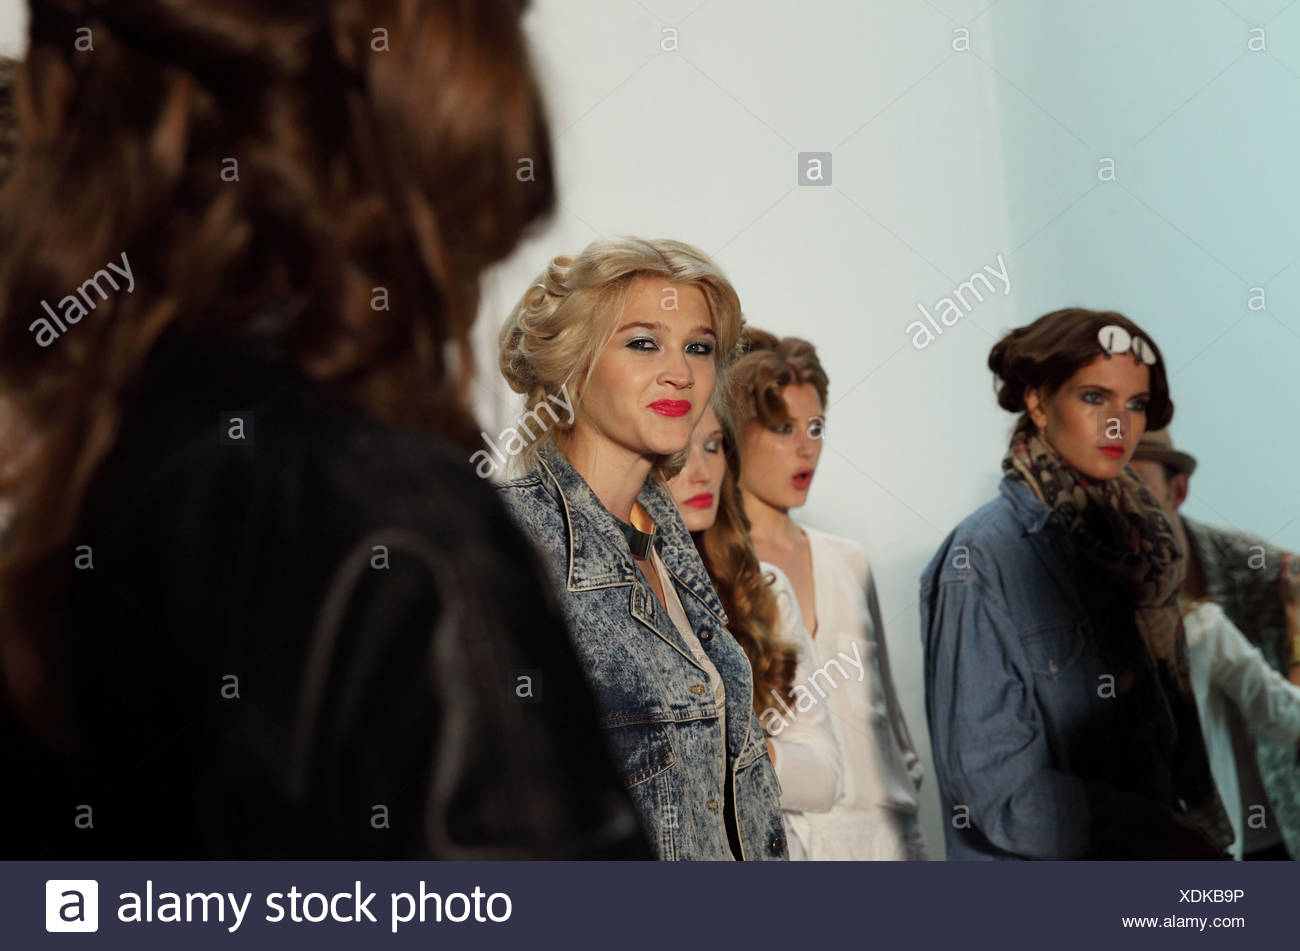 Berlin, Germany, Models backstage at Fashion Week - Stock Image